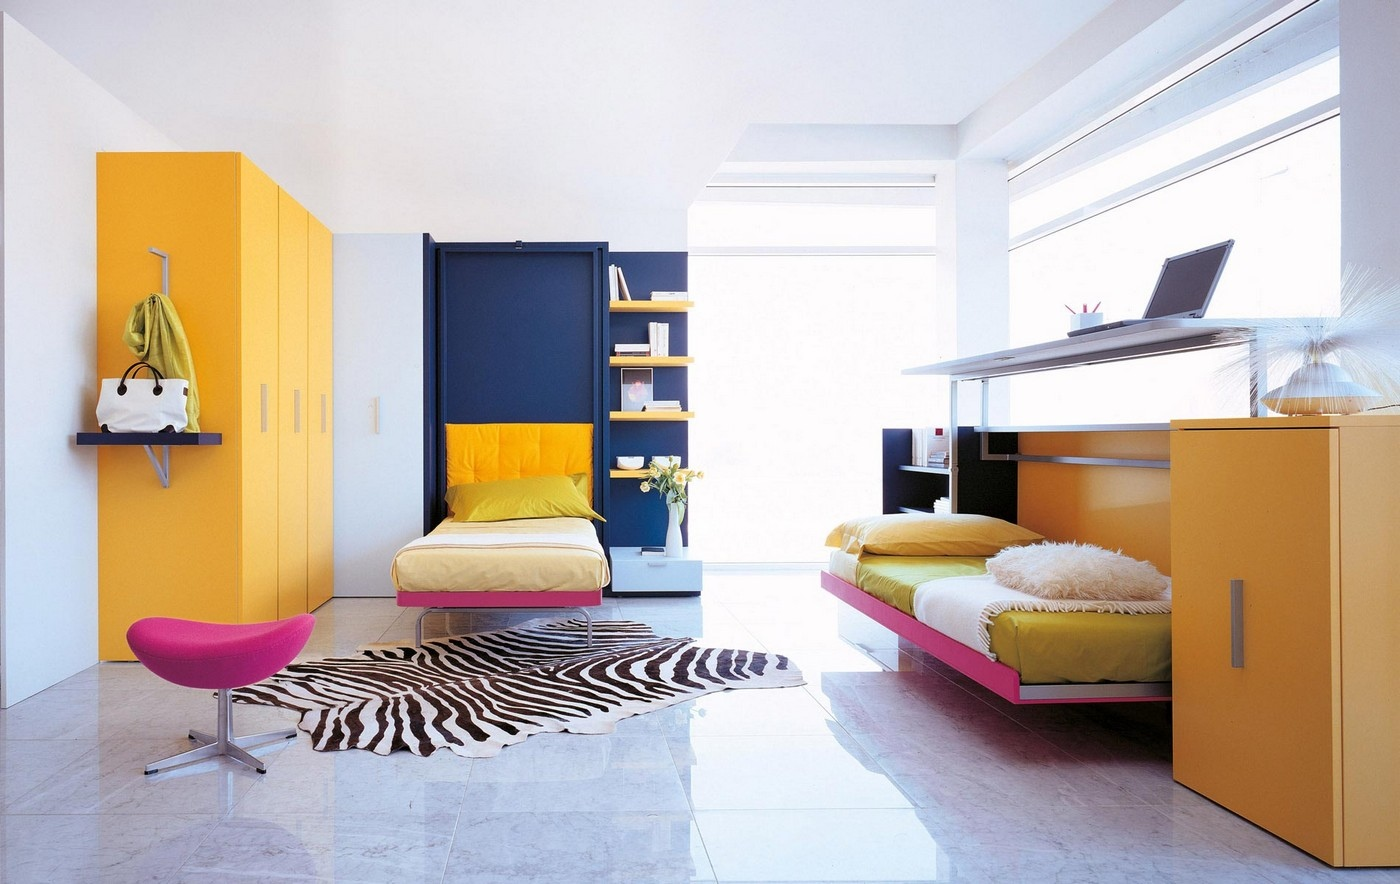 Transformable space saving kids rooms - Fold up beds for small spaces ...